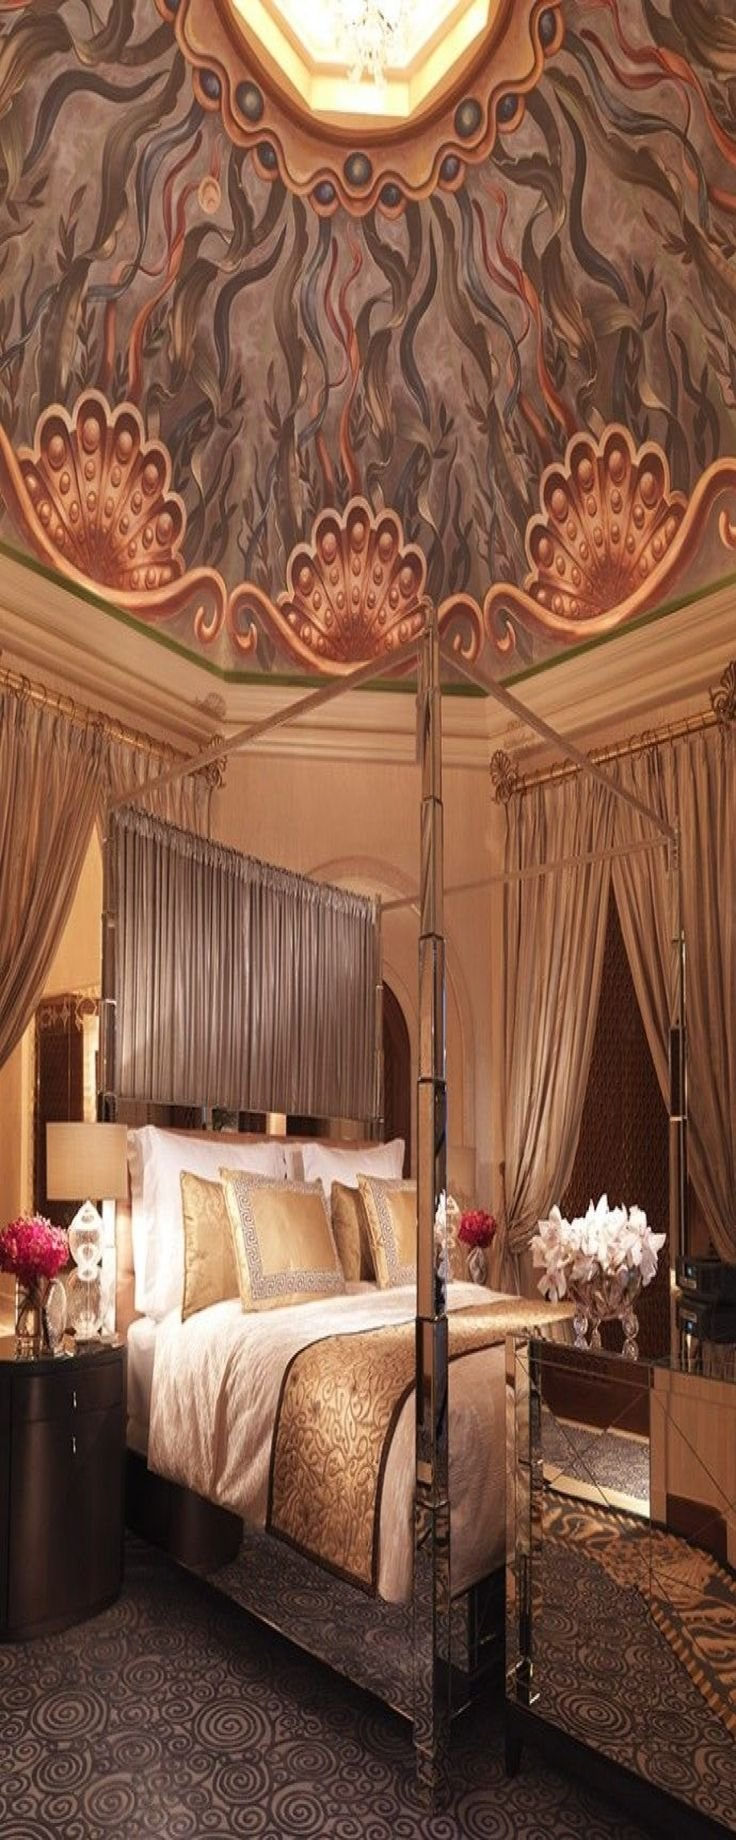 Best 20 Glamorous Bedrooms Ideas On Pinterest Glam With Pictures